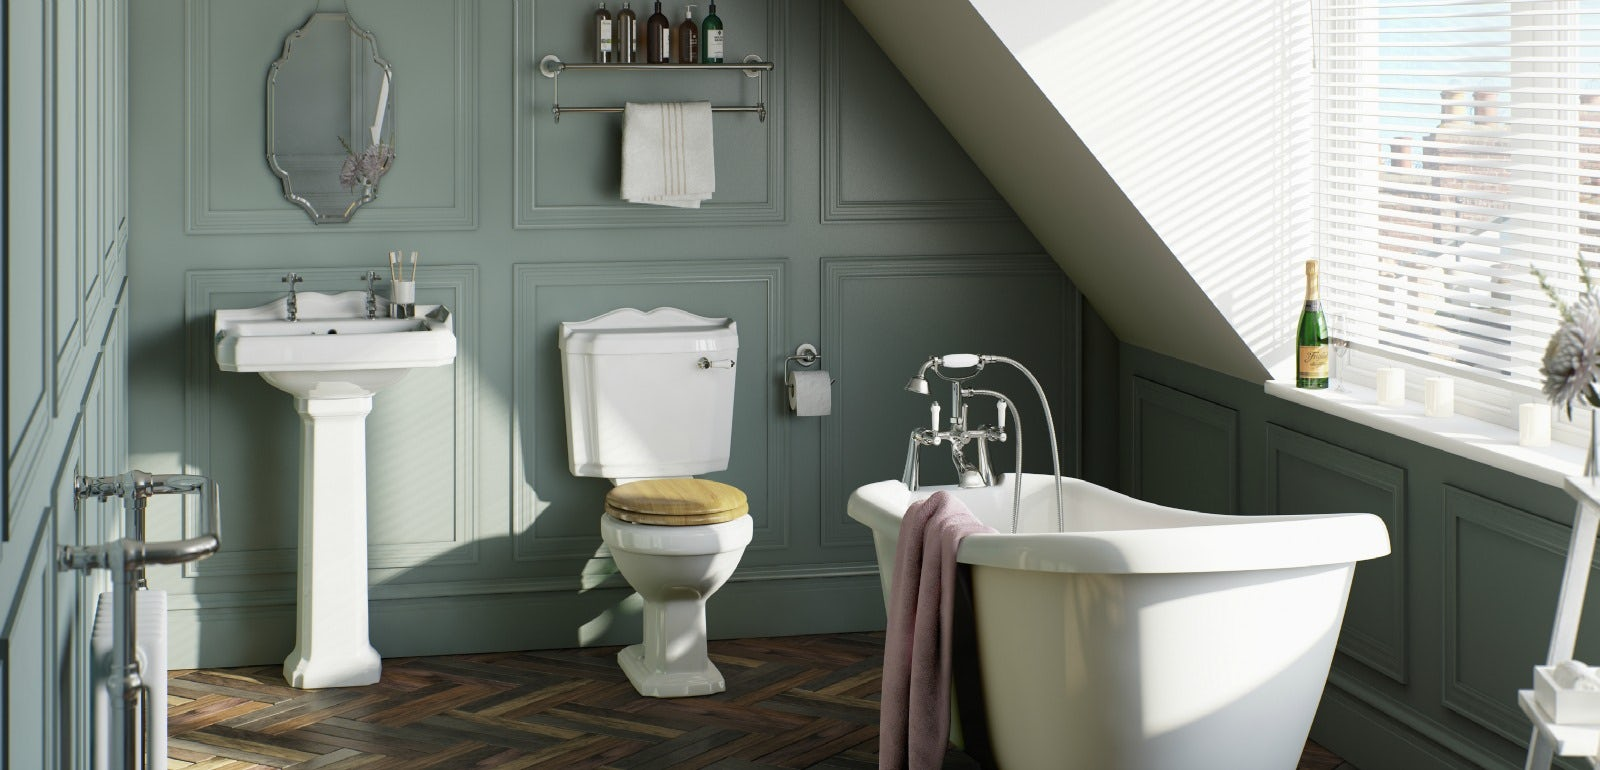 5 ways to create more space in your bathroom